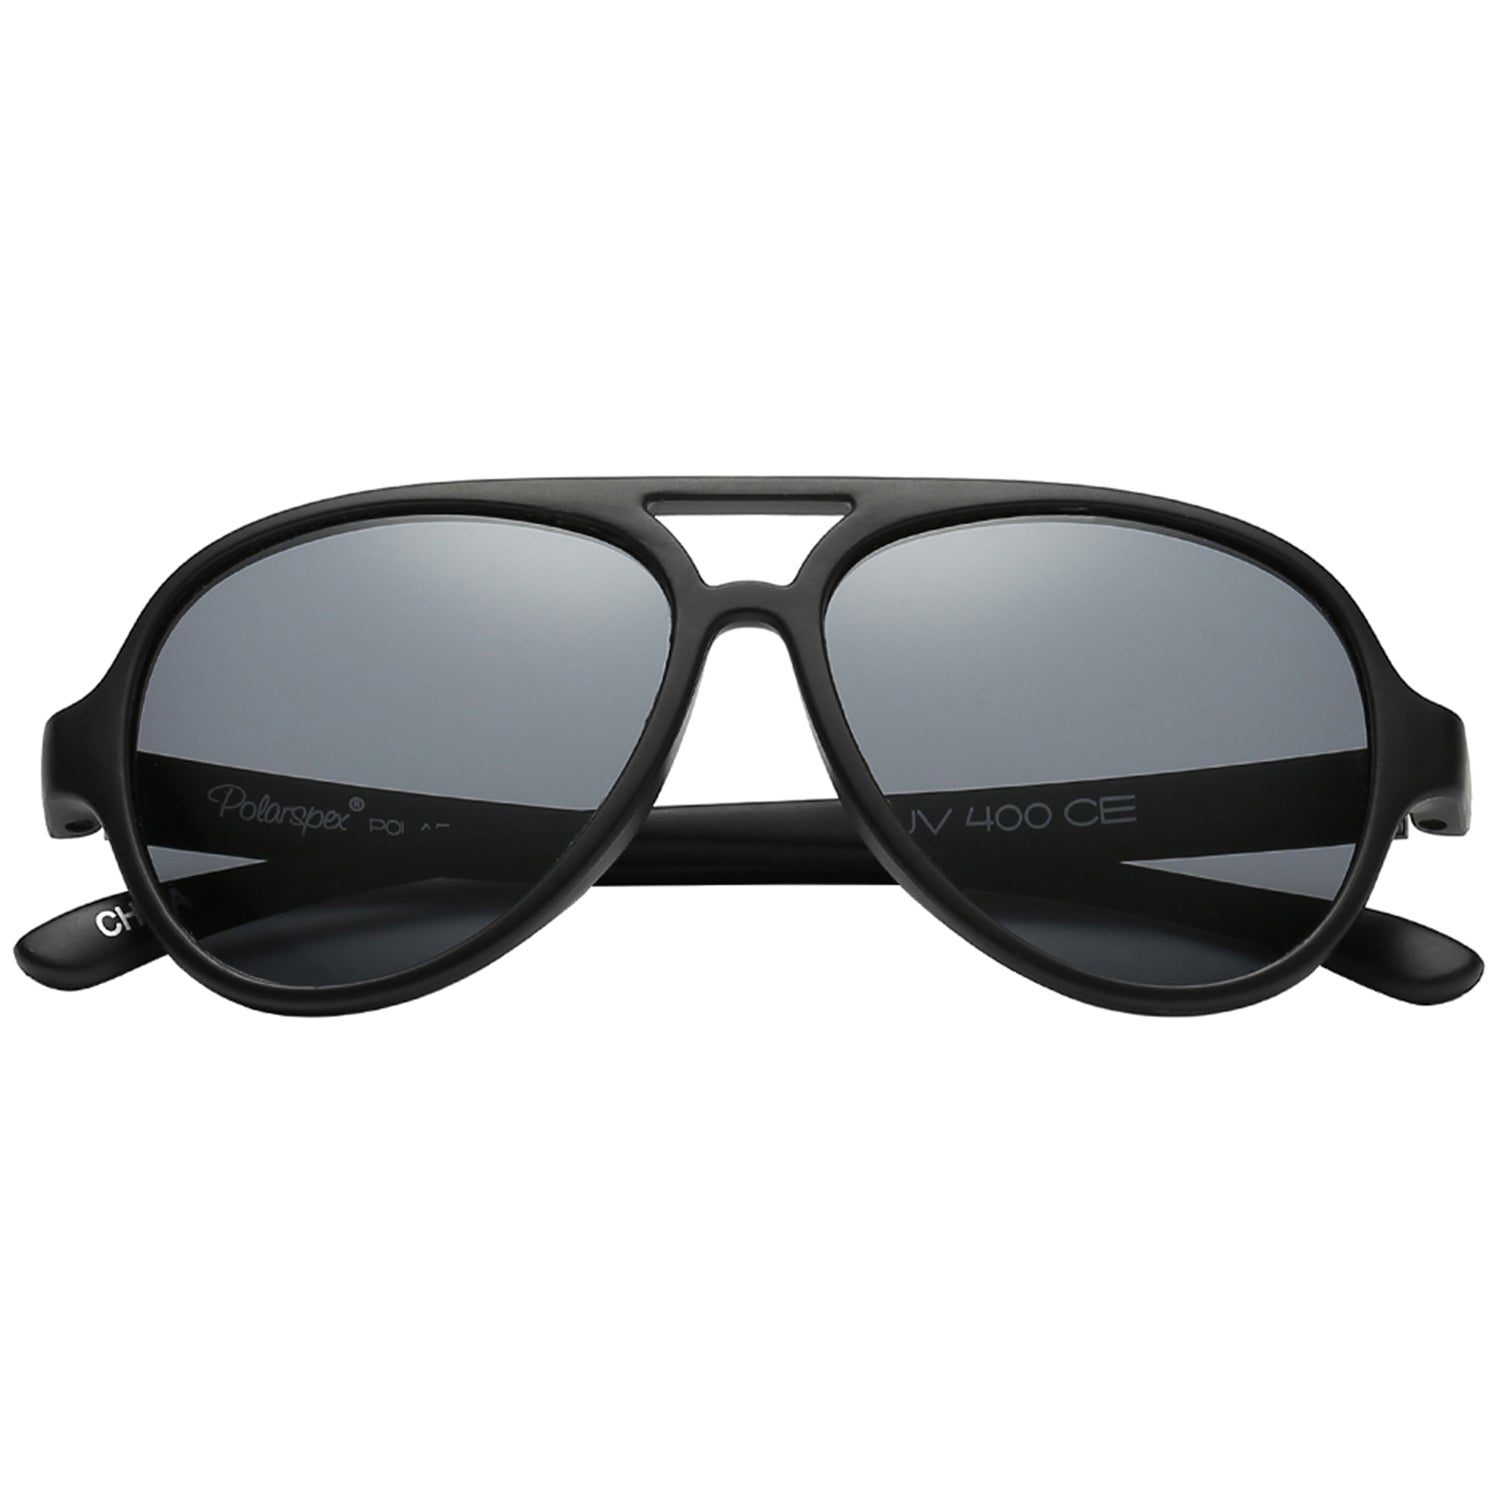 Polarspex Polarized Bendable Aviator Pilot Sunglasses with Matte Black Frames and Polarized Smoke Lenses for Boys and Girls (Ages 2 - 8)